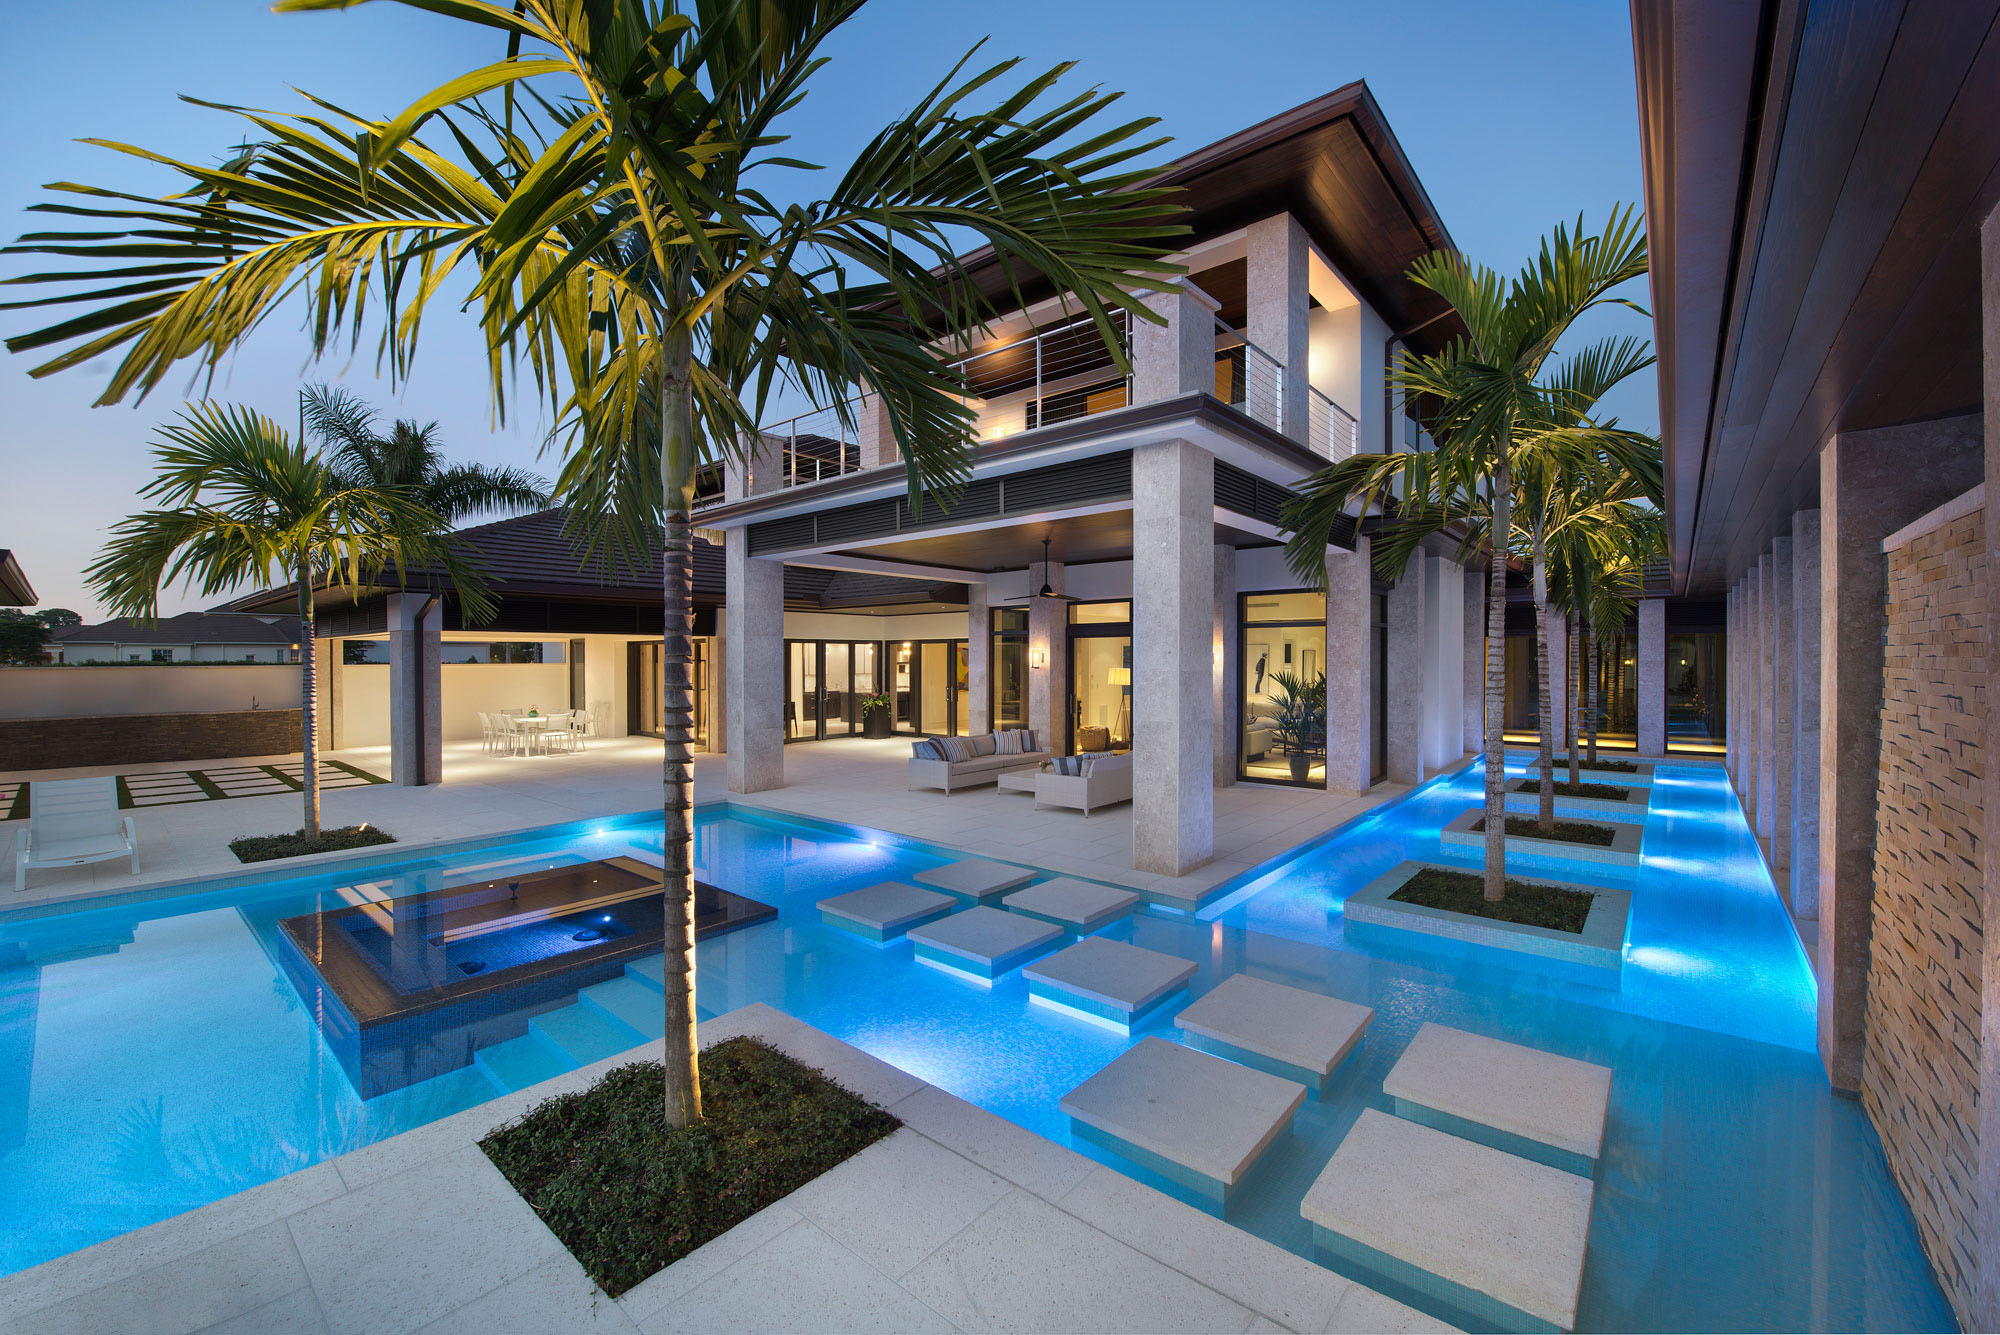 Custom dream home in florida with elegant swimming pool for Pool design florida